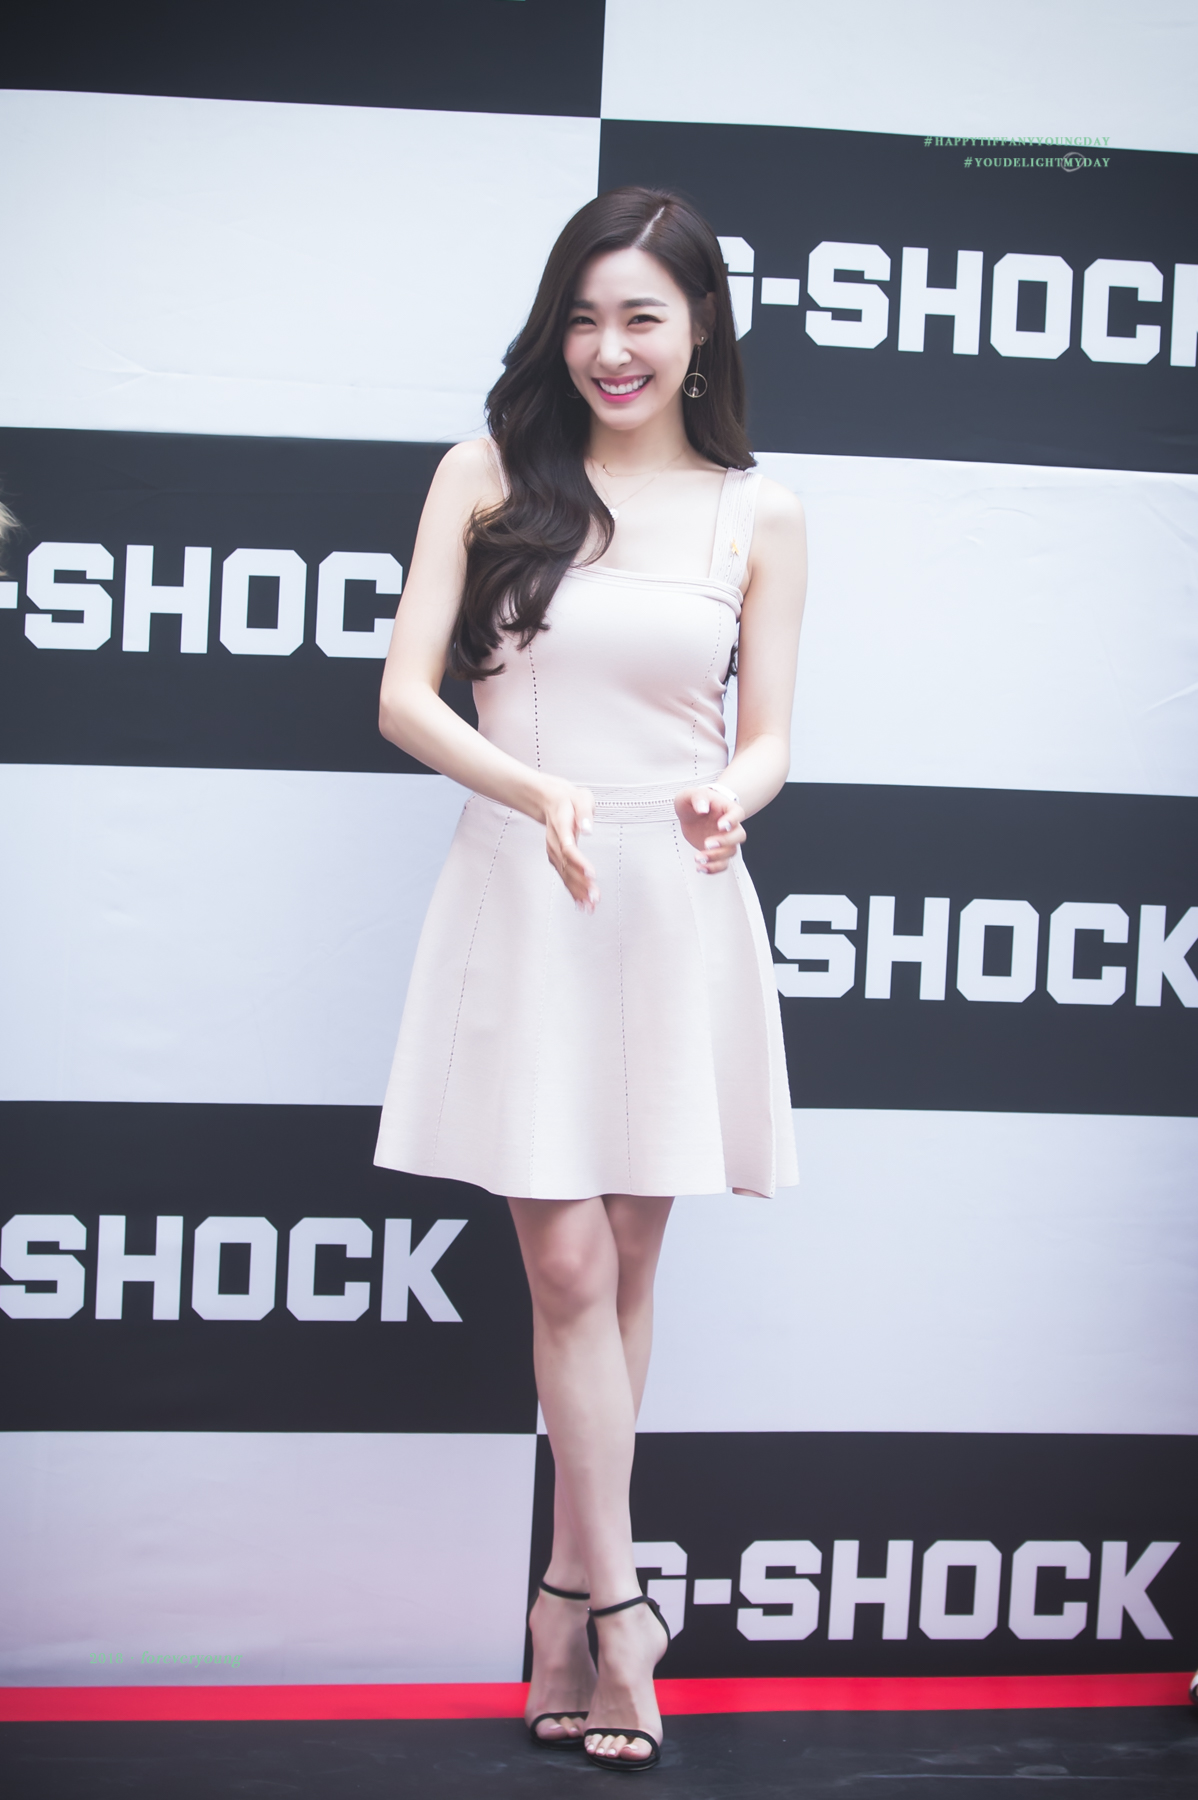 Tiffany - 170416 Casio G-Shock Fansign Event   Manuth Chek s SoShi Site 137bb4d099